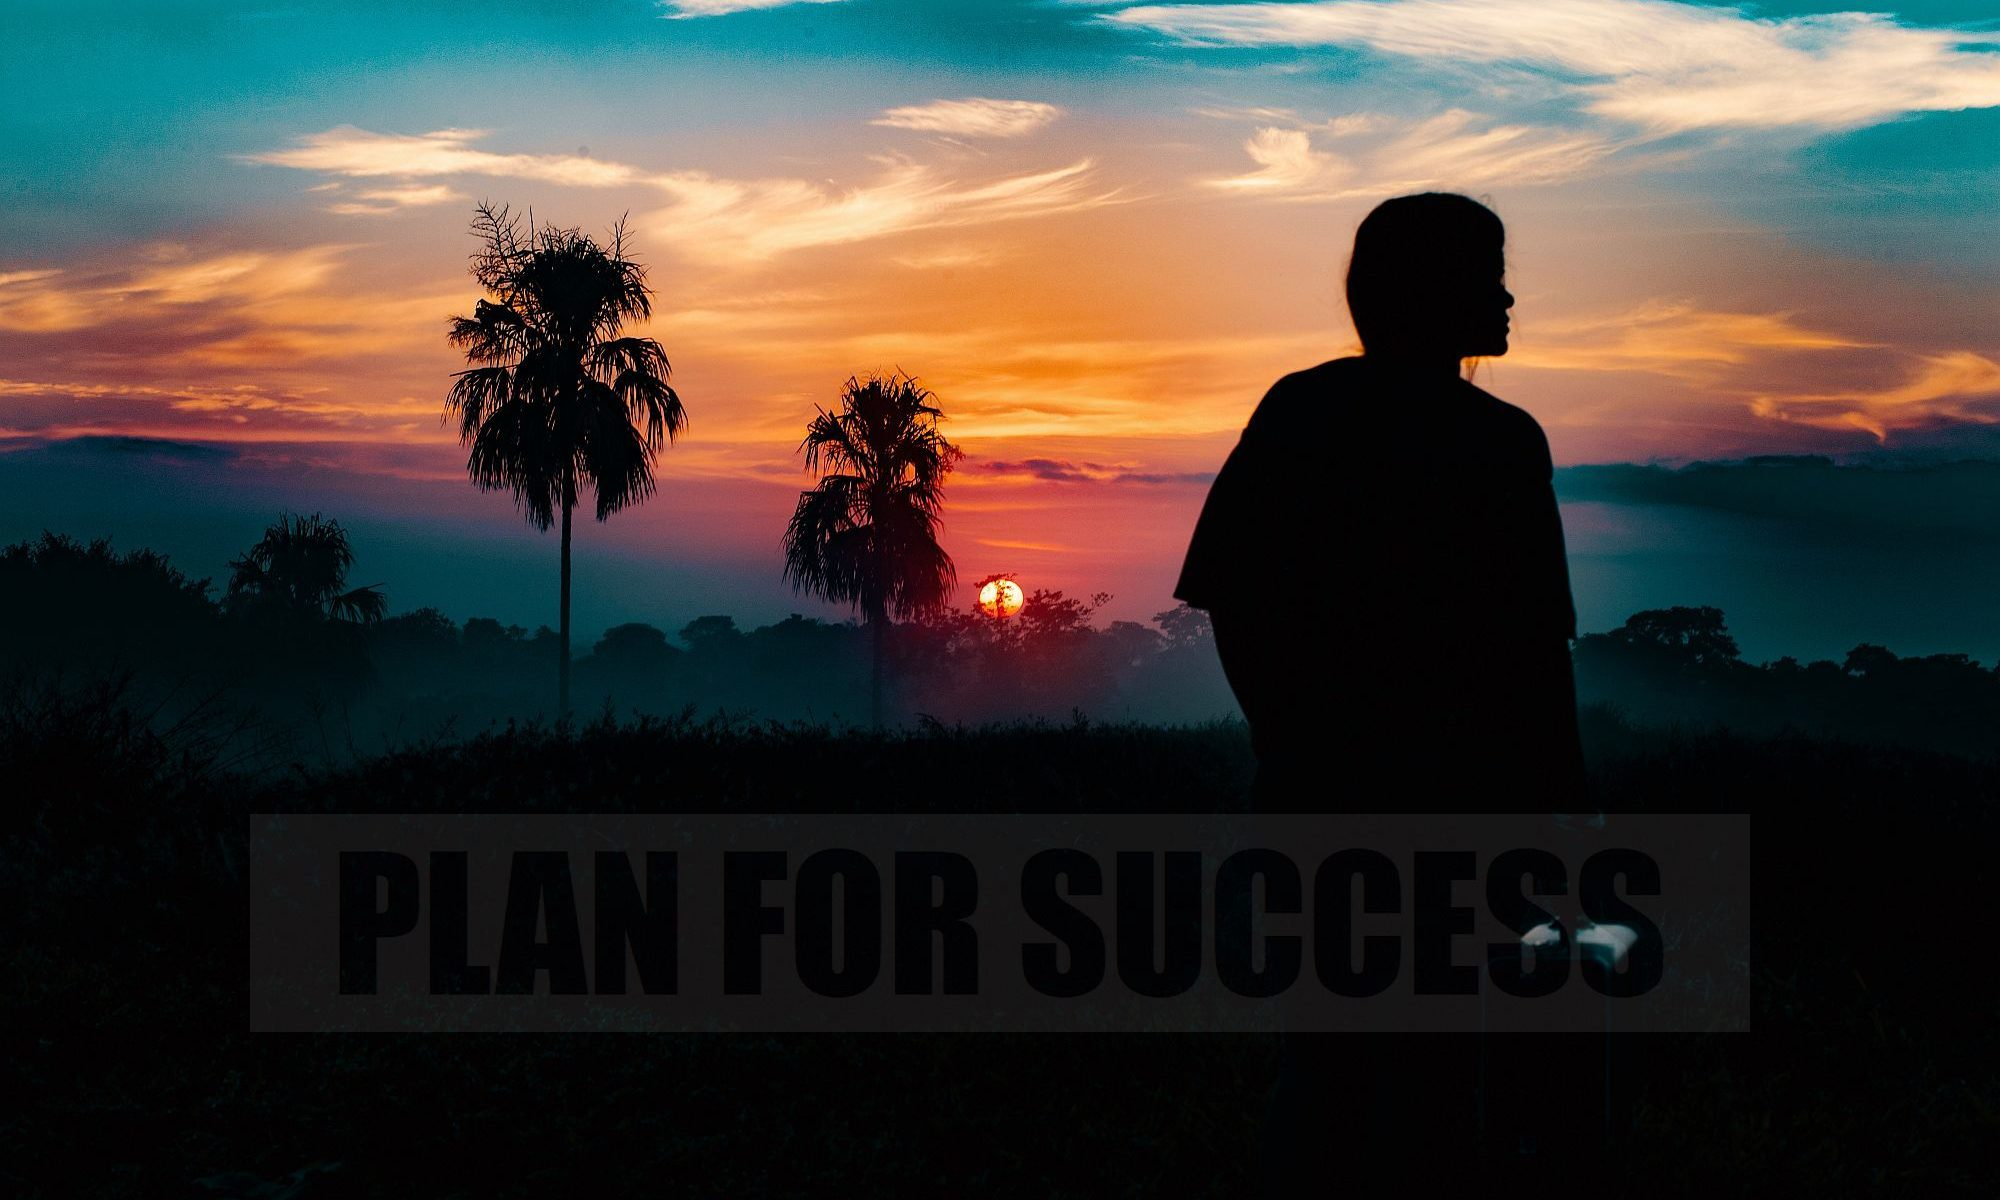 Conscious-Creation-to-Succeed-Metaphysical-Life-Plan-for-Success-2000